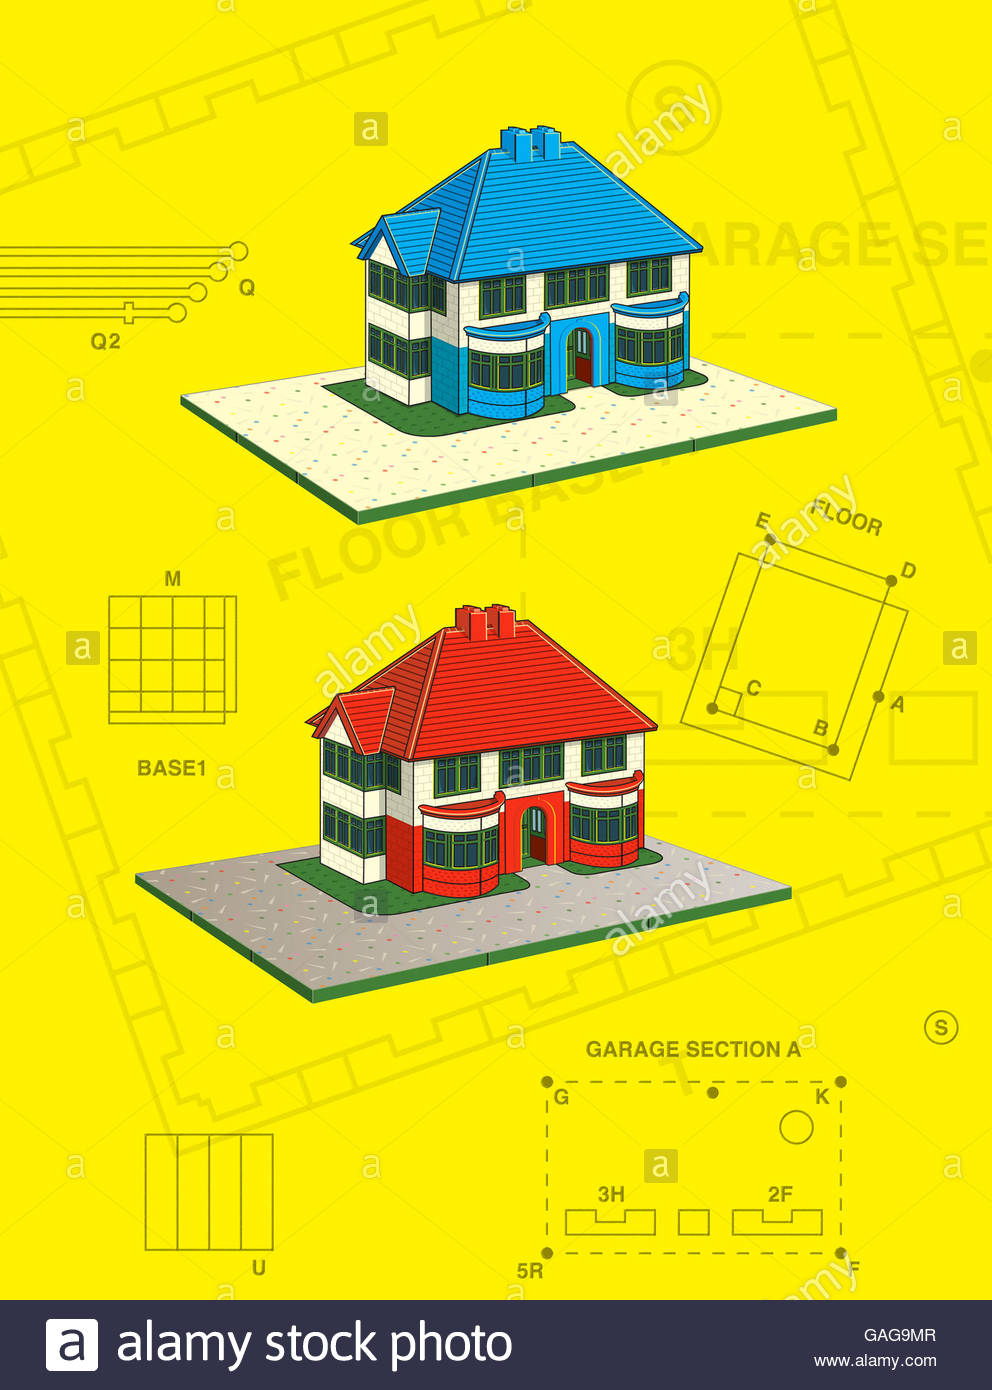 Vintage thirties house style construction kit toy scale model illustration Stock Photo